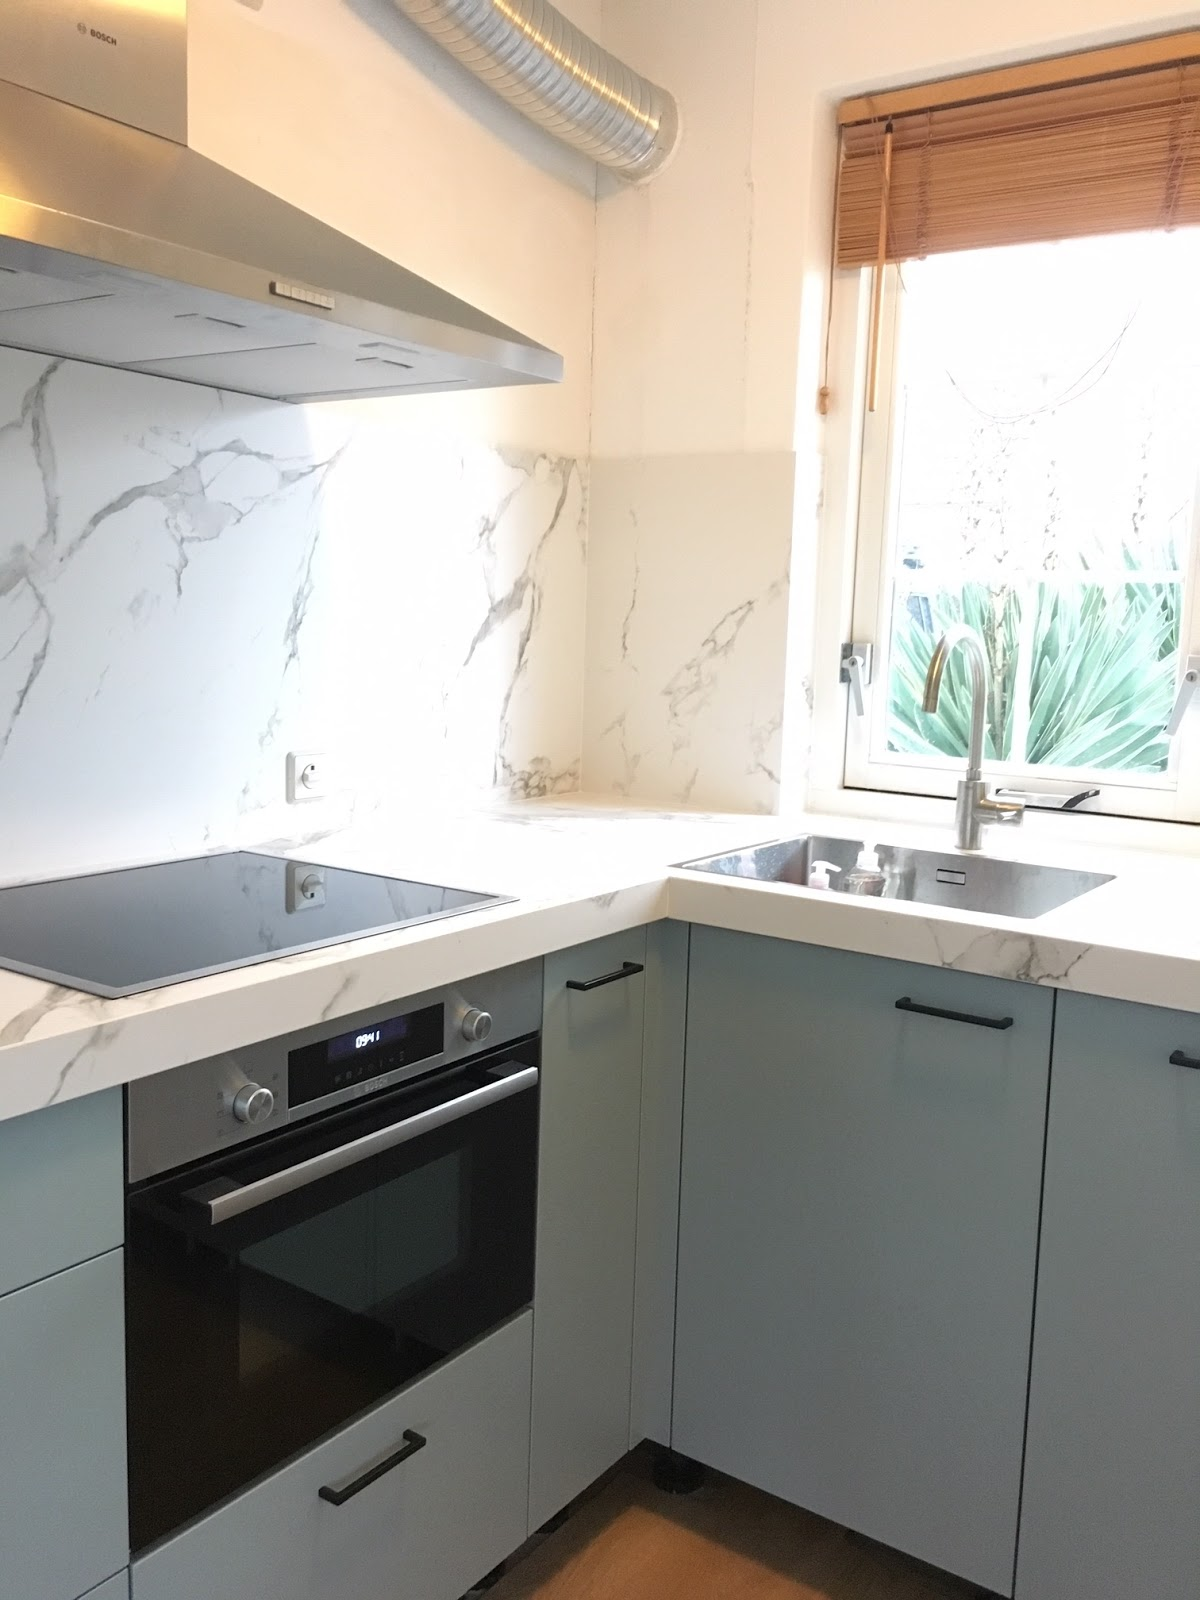 Dekton countertop, resistant worktops, Quartz, recycled glass, Ikea counterops difference. Best countertops